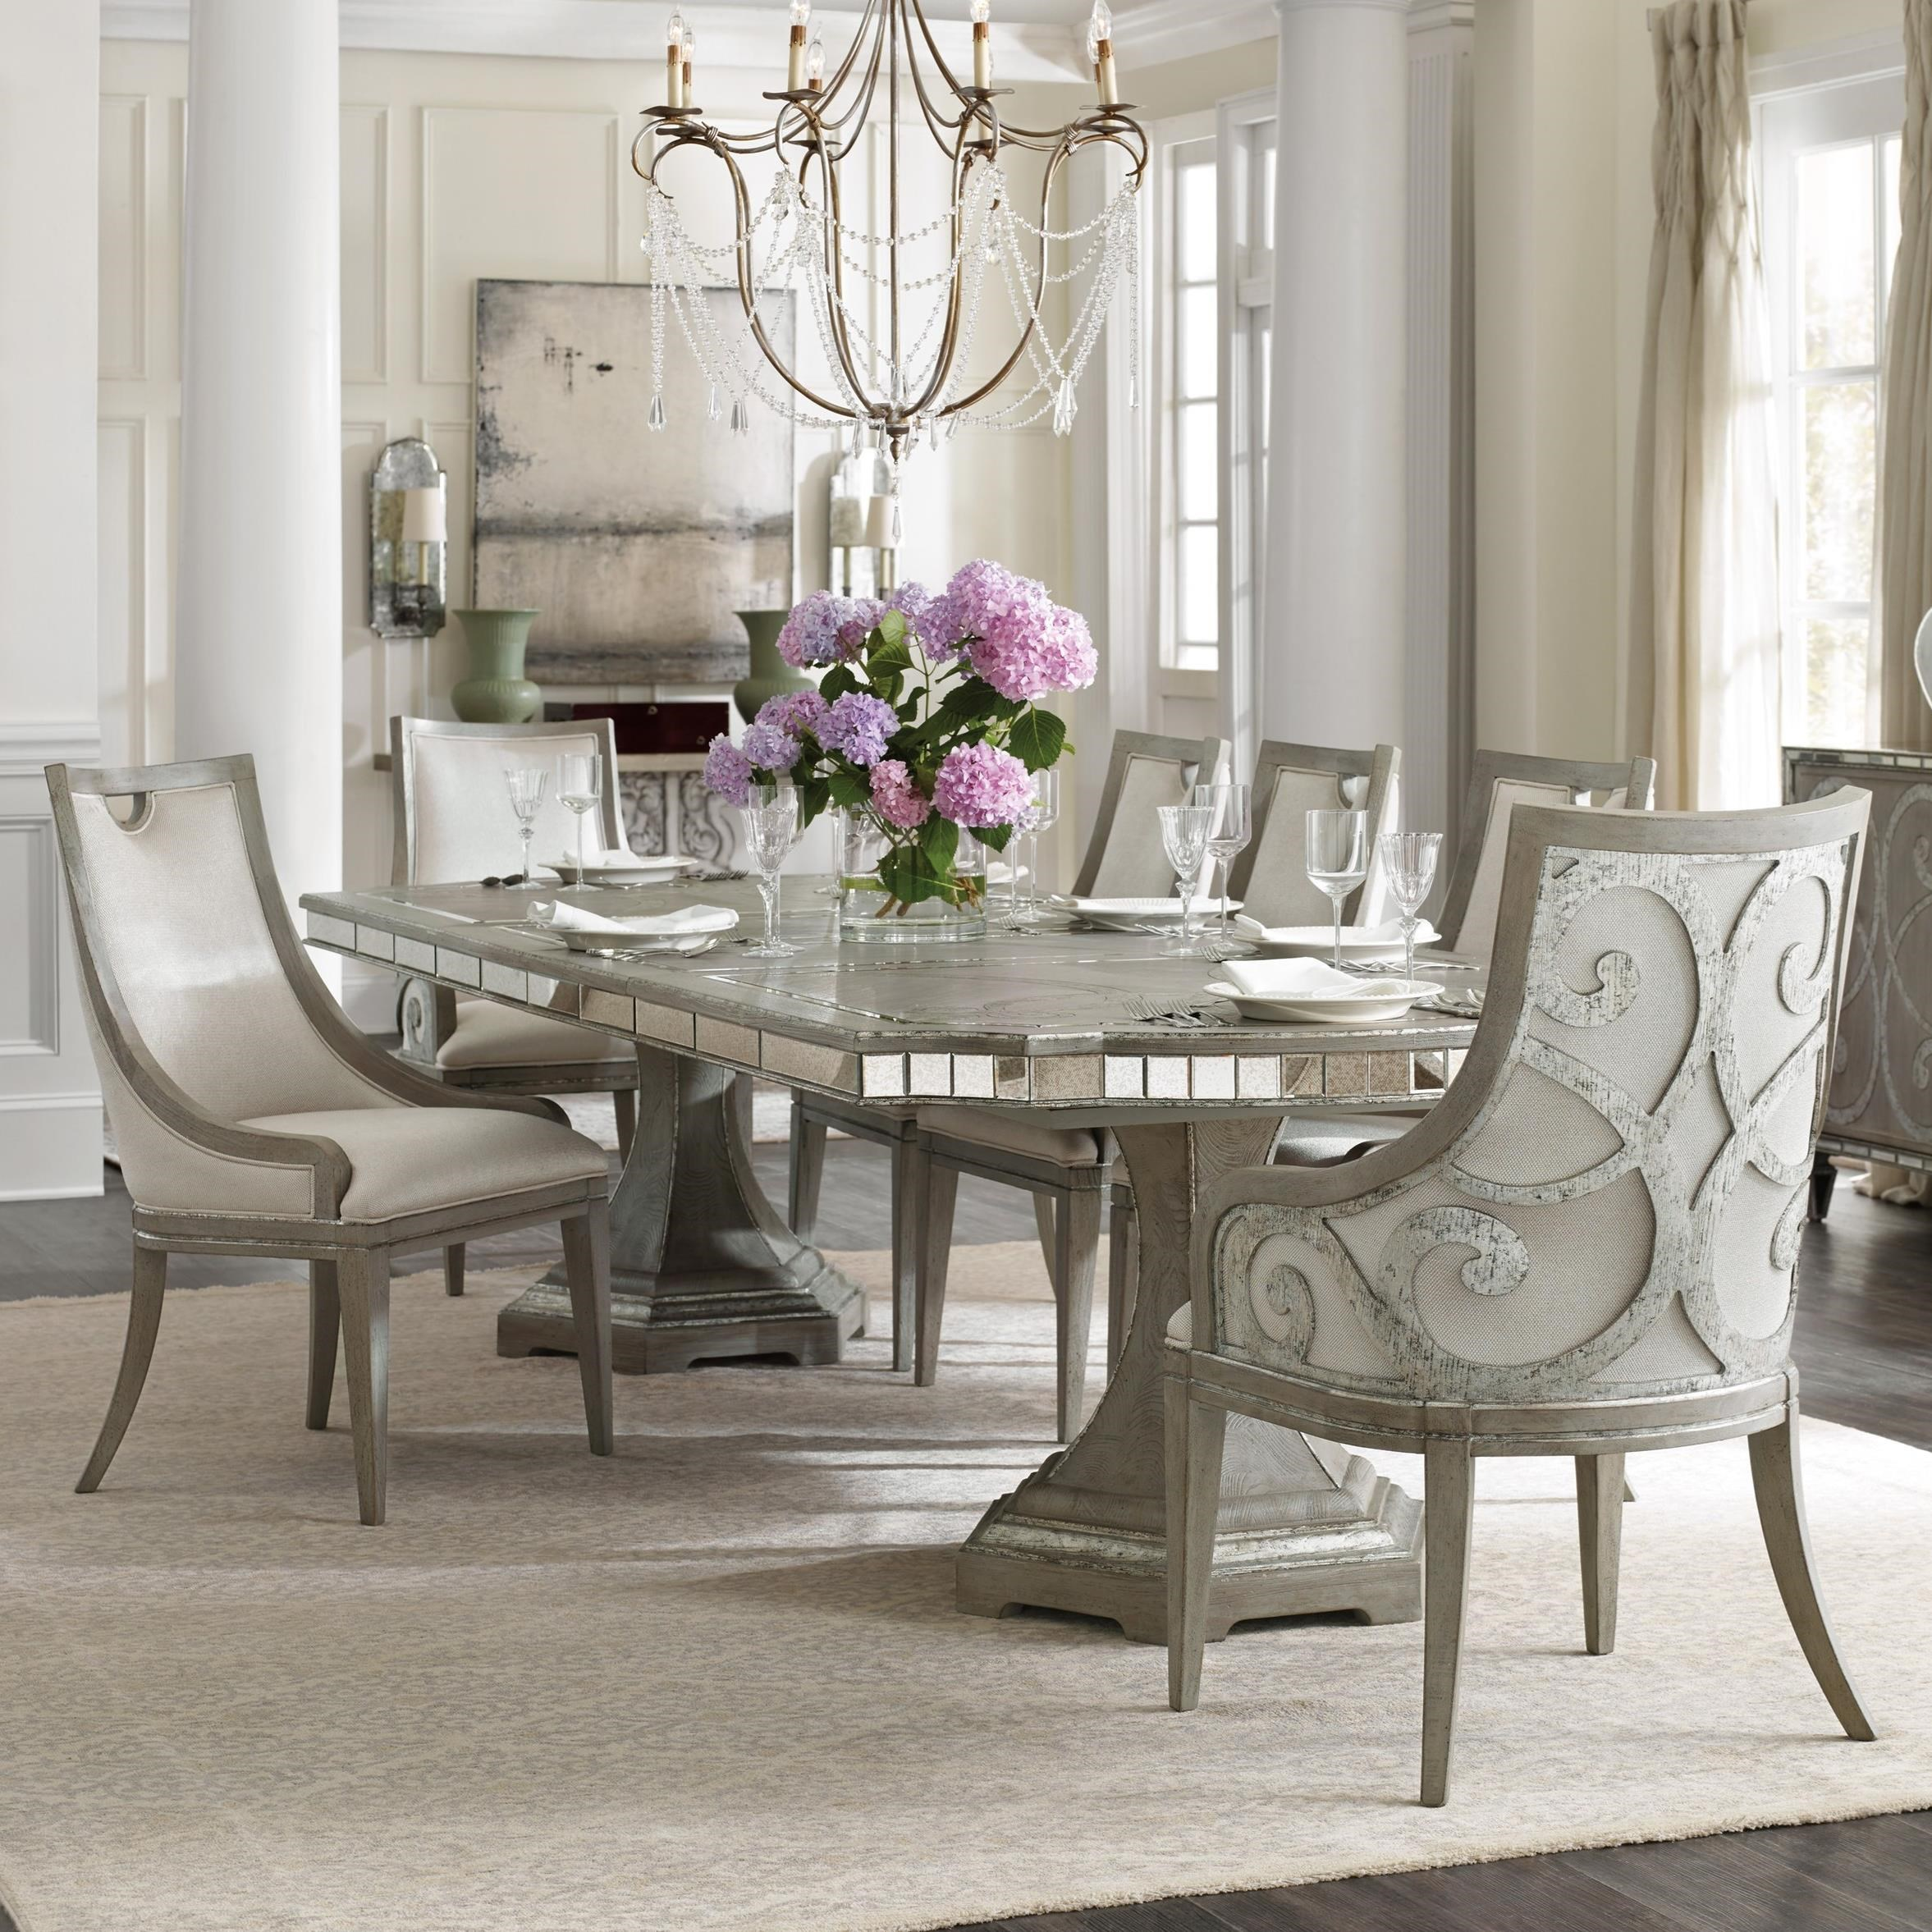 Hooker Furniture Sanctuary 5603 75200 Ltbr 2x75400 Ltbr 4x7541 Transitional 7 Piece Dining Set O Dunk O Bright Furniture Dining 7 Or More Piece Sets